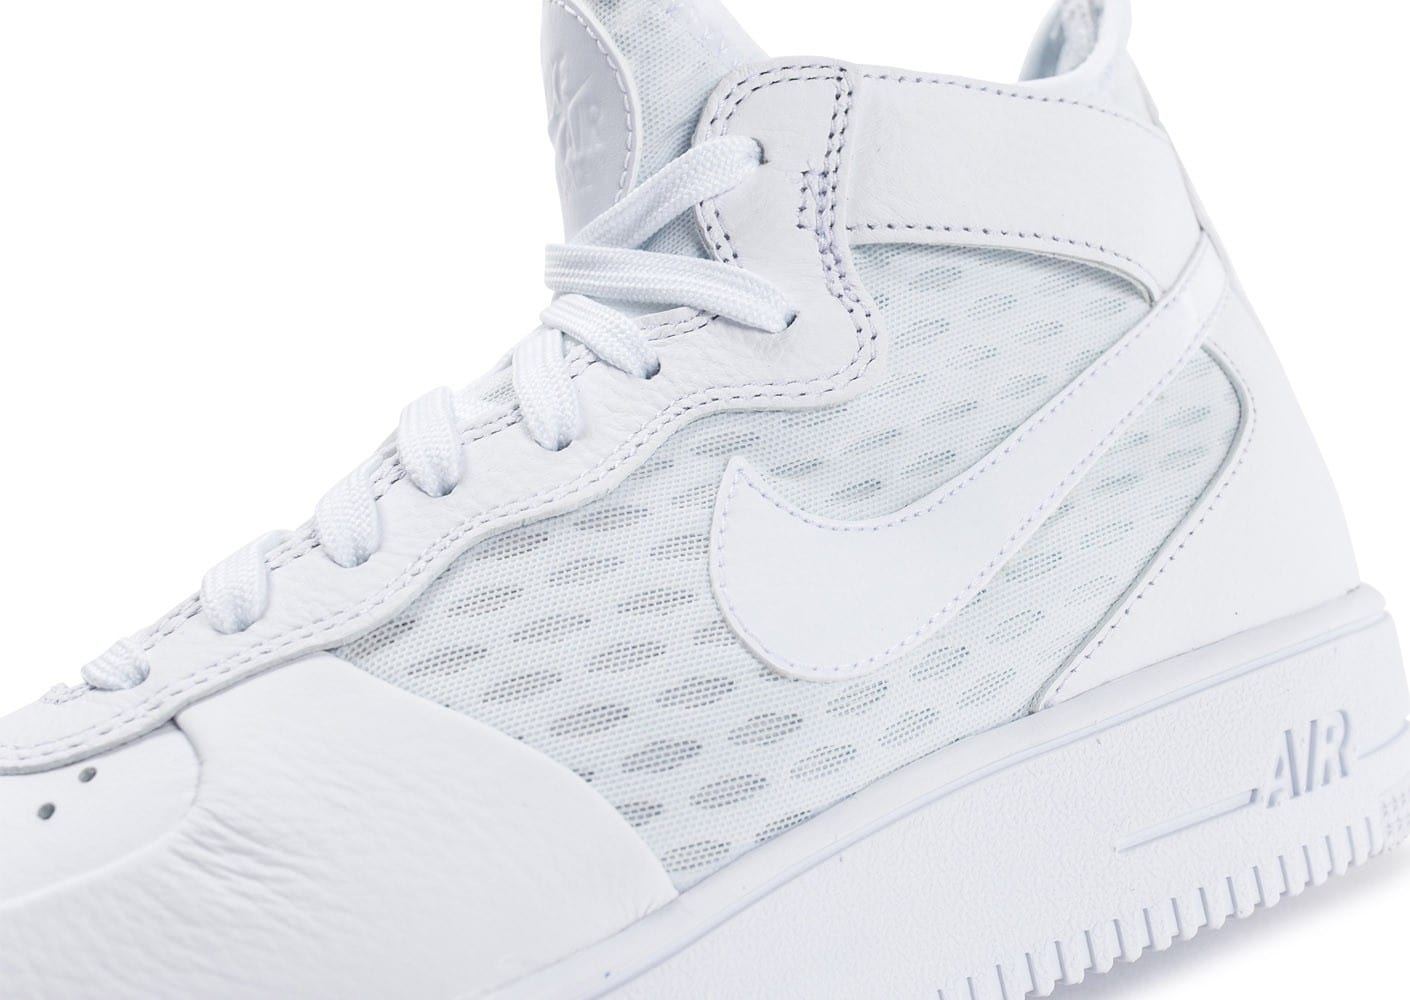 sneakers for cheap bba9d ecf7f ... Chaussures Nike Air Force 1 UltraForce Mid blanche vue dessus